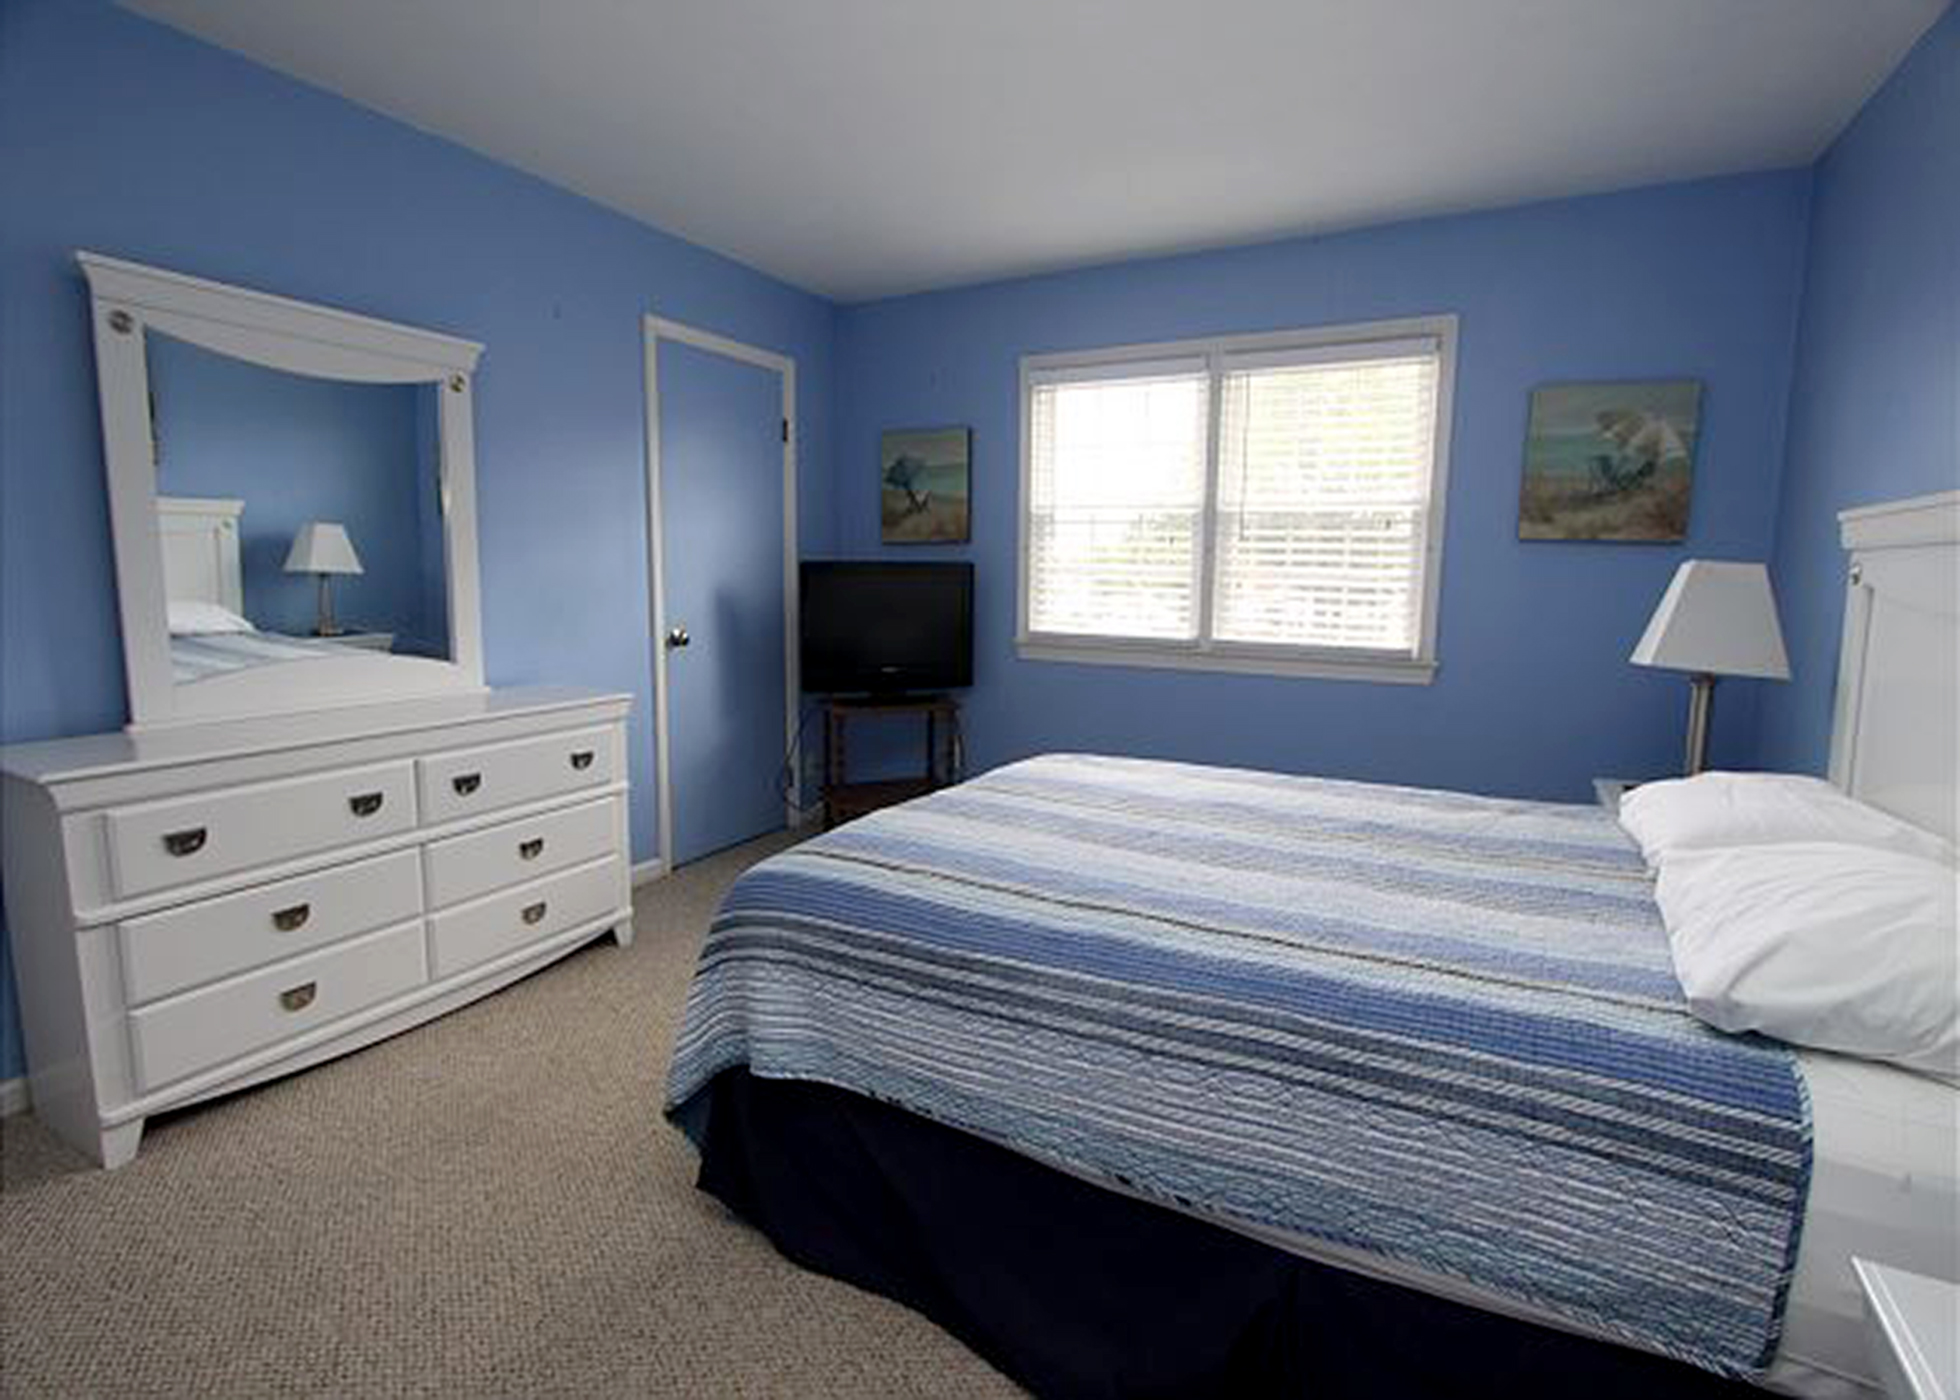 Vacation Rental 401 21st Street Unit #7- KELLEY'S KORNER Virginia Beach, VA